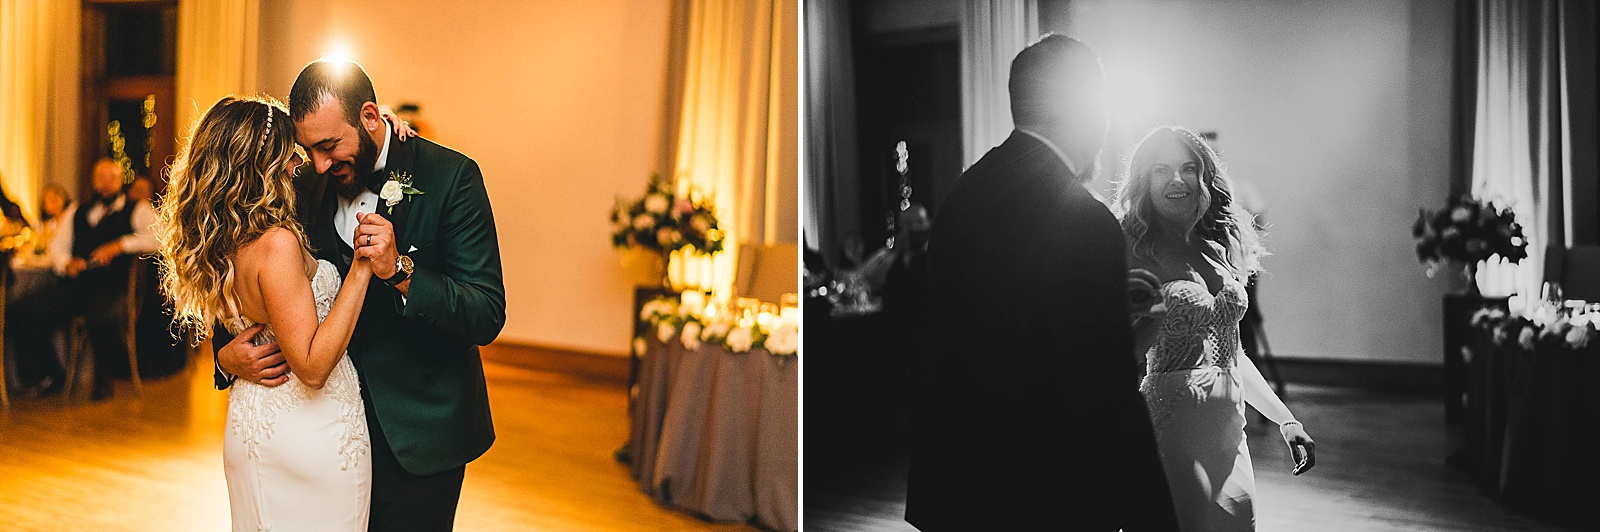 49 ivy room first dance - Ivy Room Chicago Wedding Photos // Bethany + Anthony